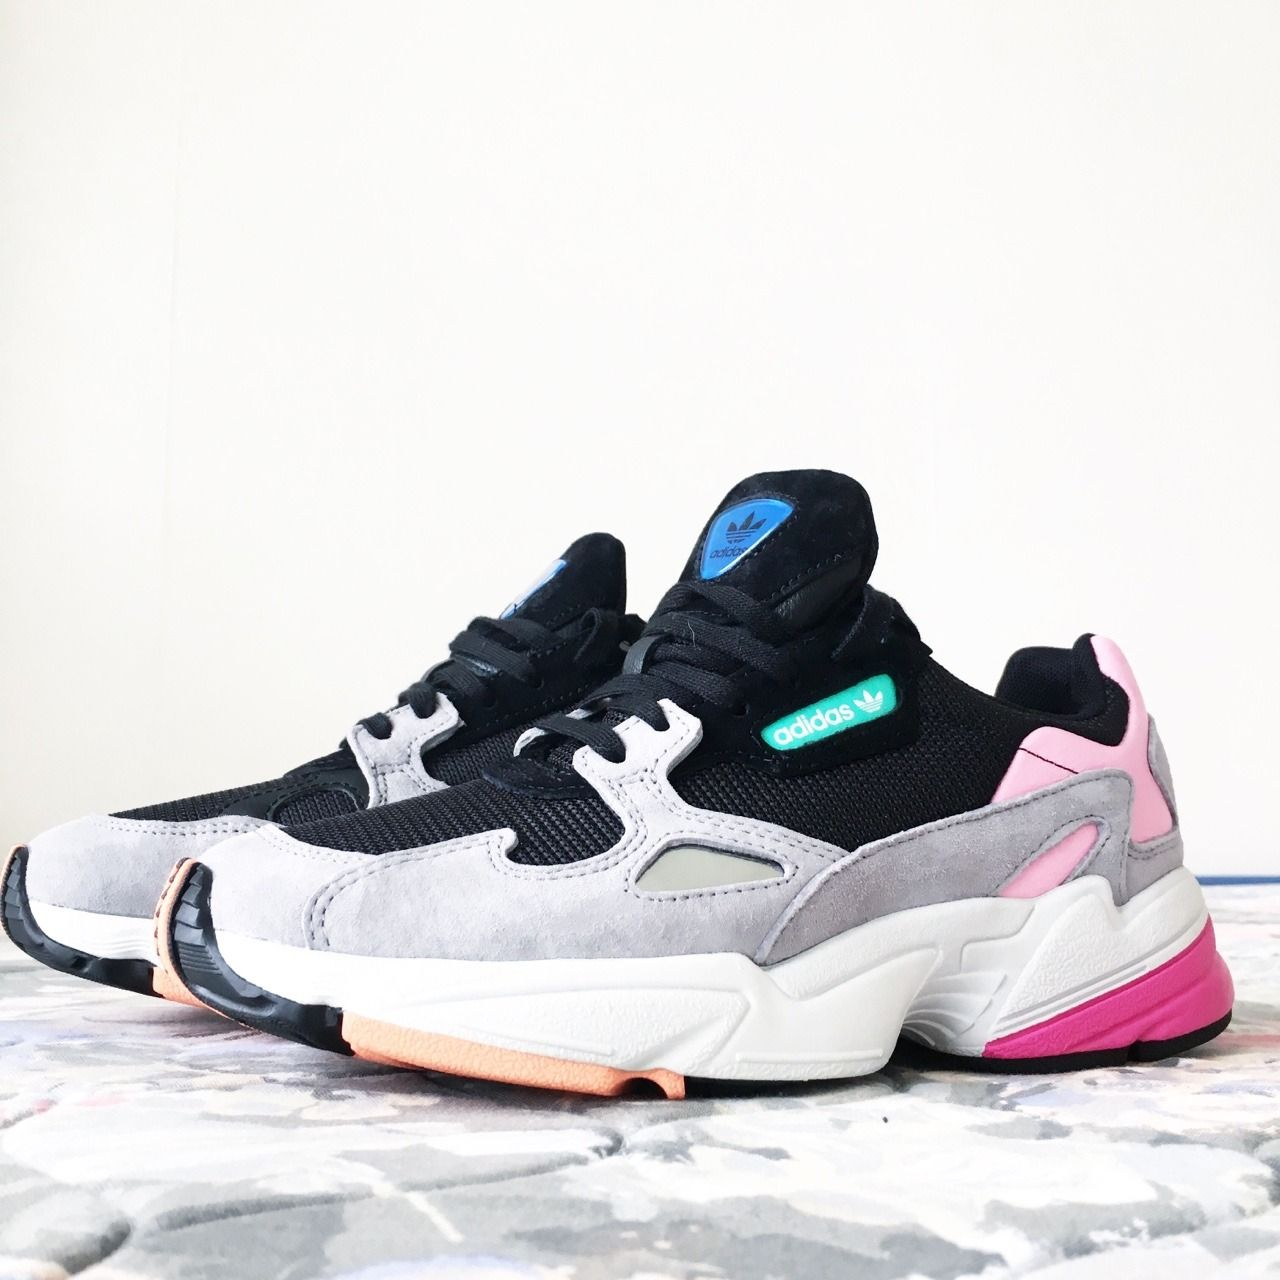 reputable site 50eca 5ff4b adidas Originals Falcon